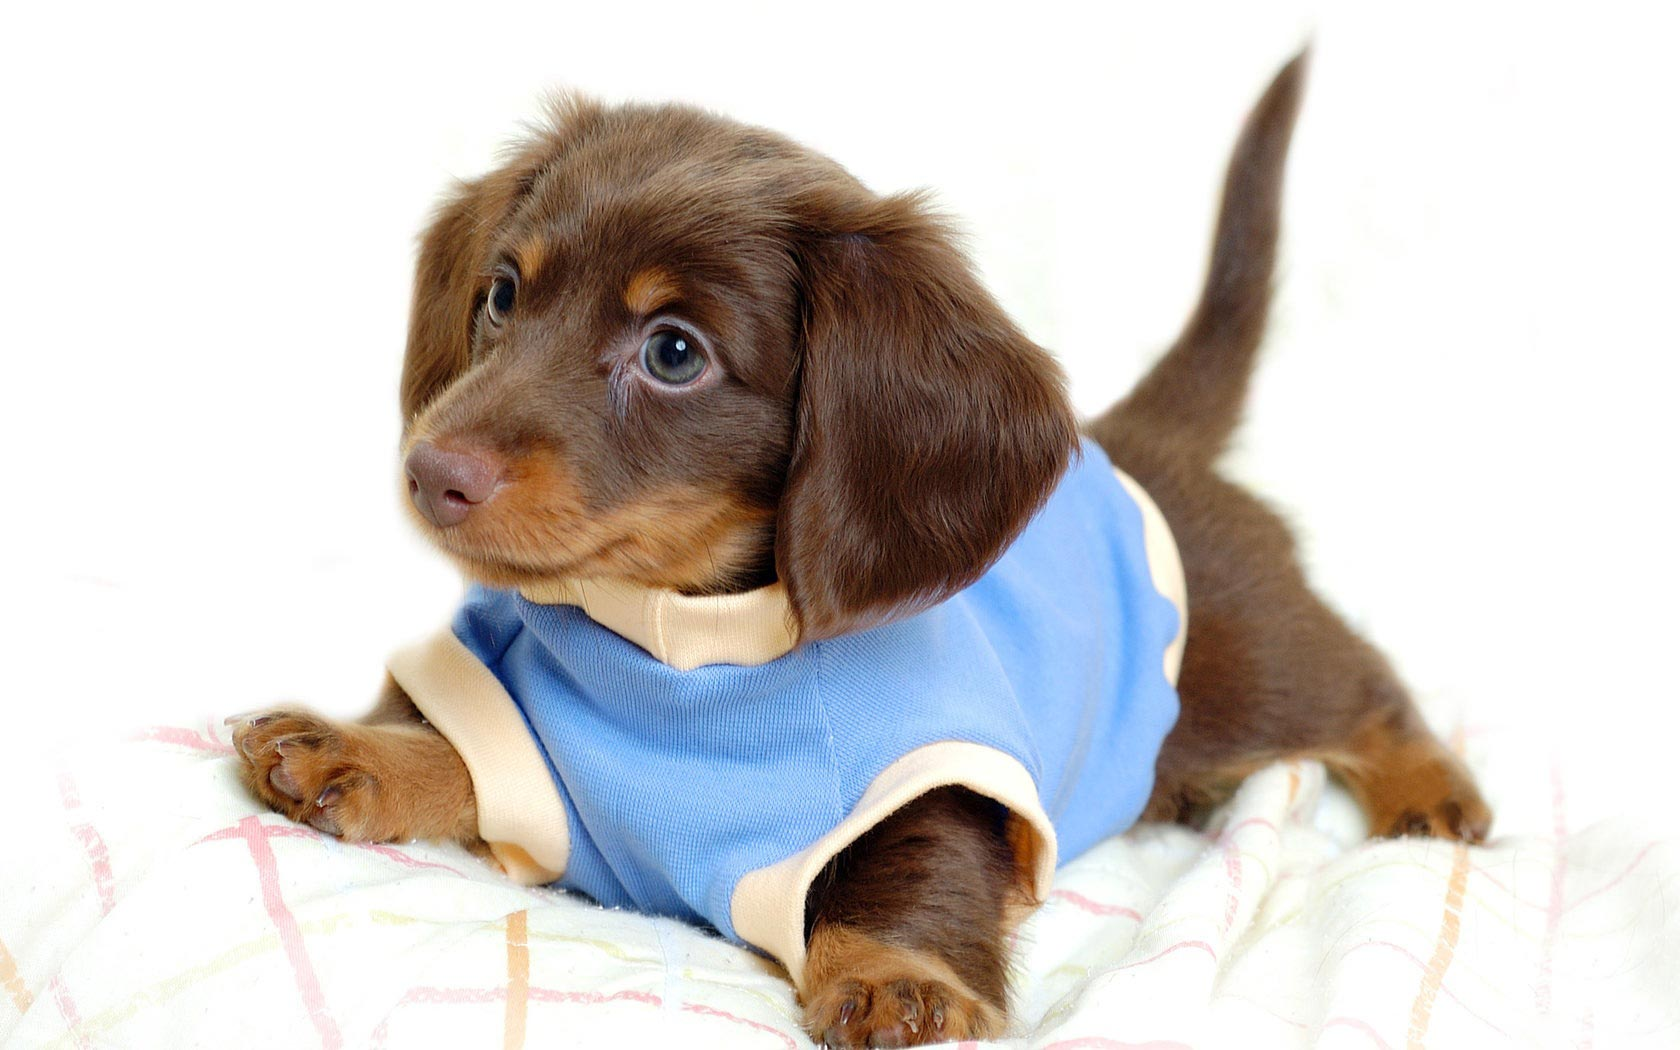 desktop-backgrounds-animal-life-dogs-puppy-dogs-clothes